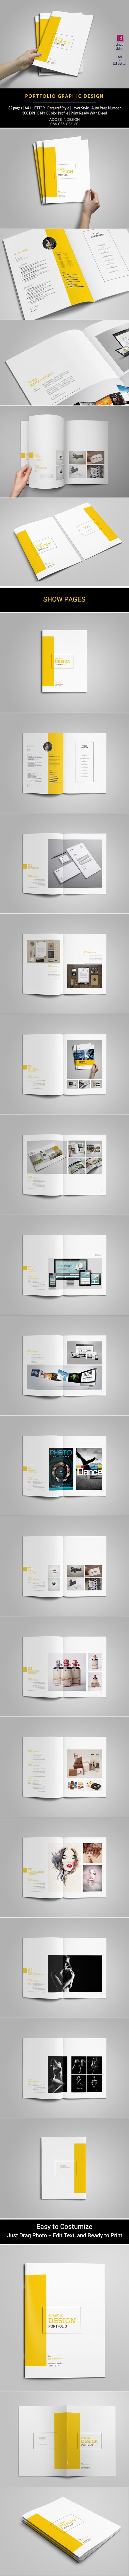 https://www.behance.net/gallery/26689171/Graphic-Design-Portfolio-Template                                                                                                                                                                                 More